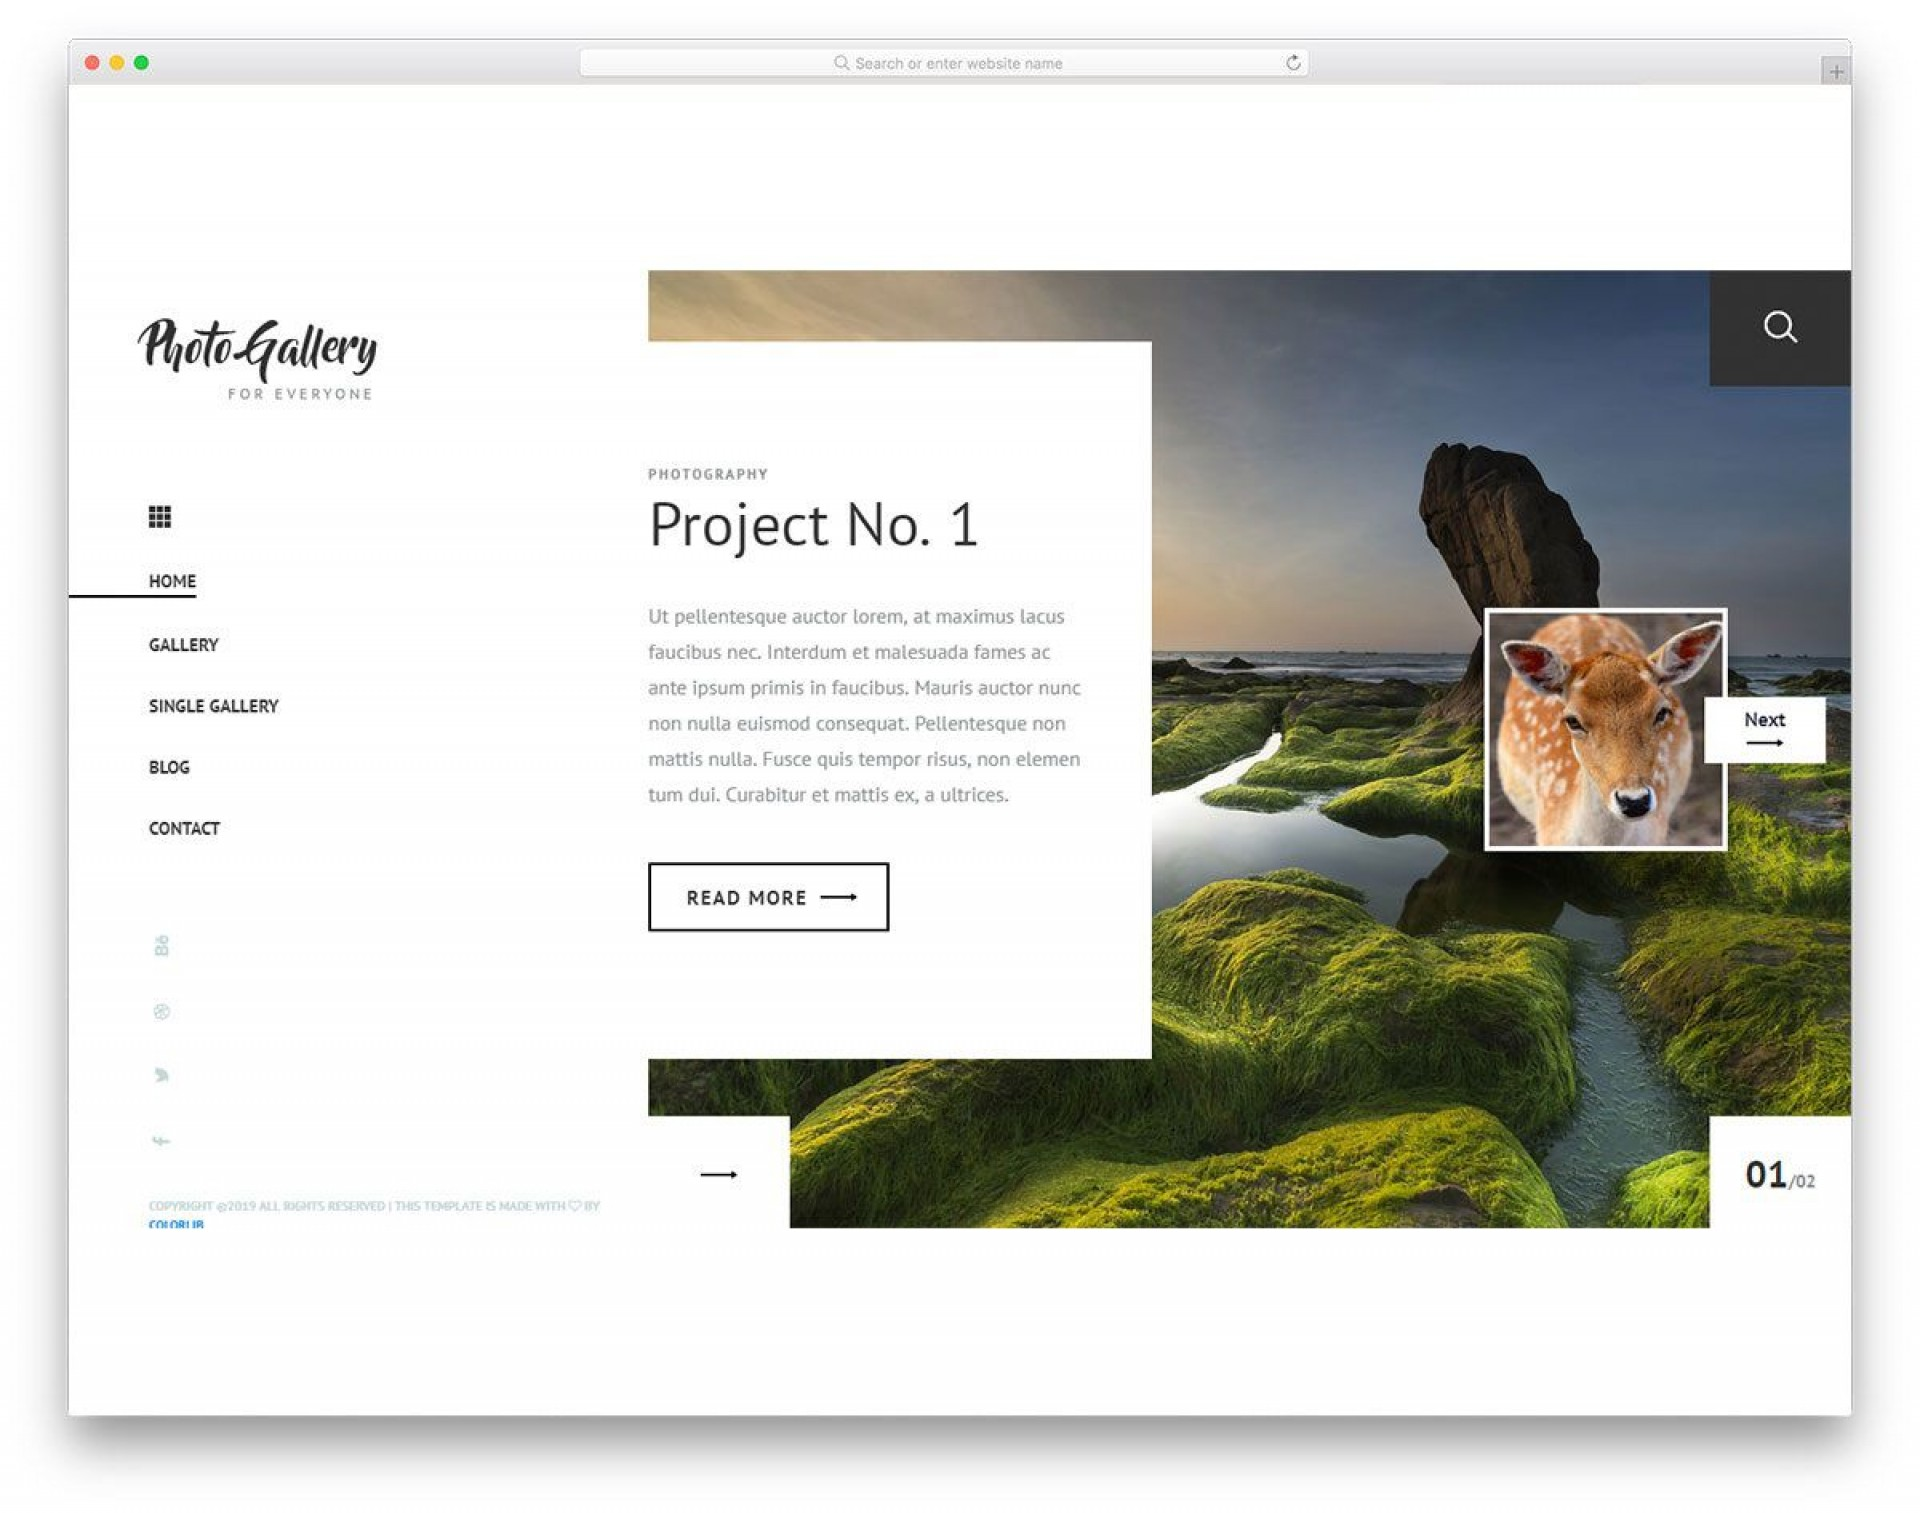 004 Fearsome Free Cs Professional Website Template Download Image  Html With Jquery1920